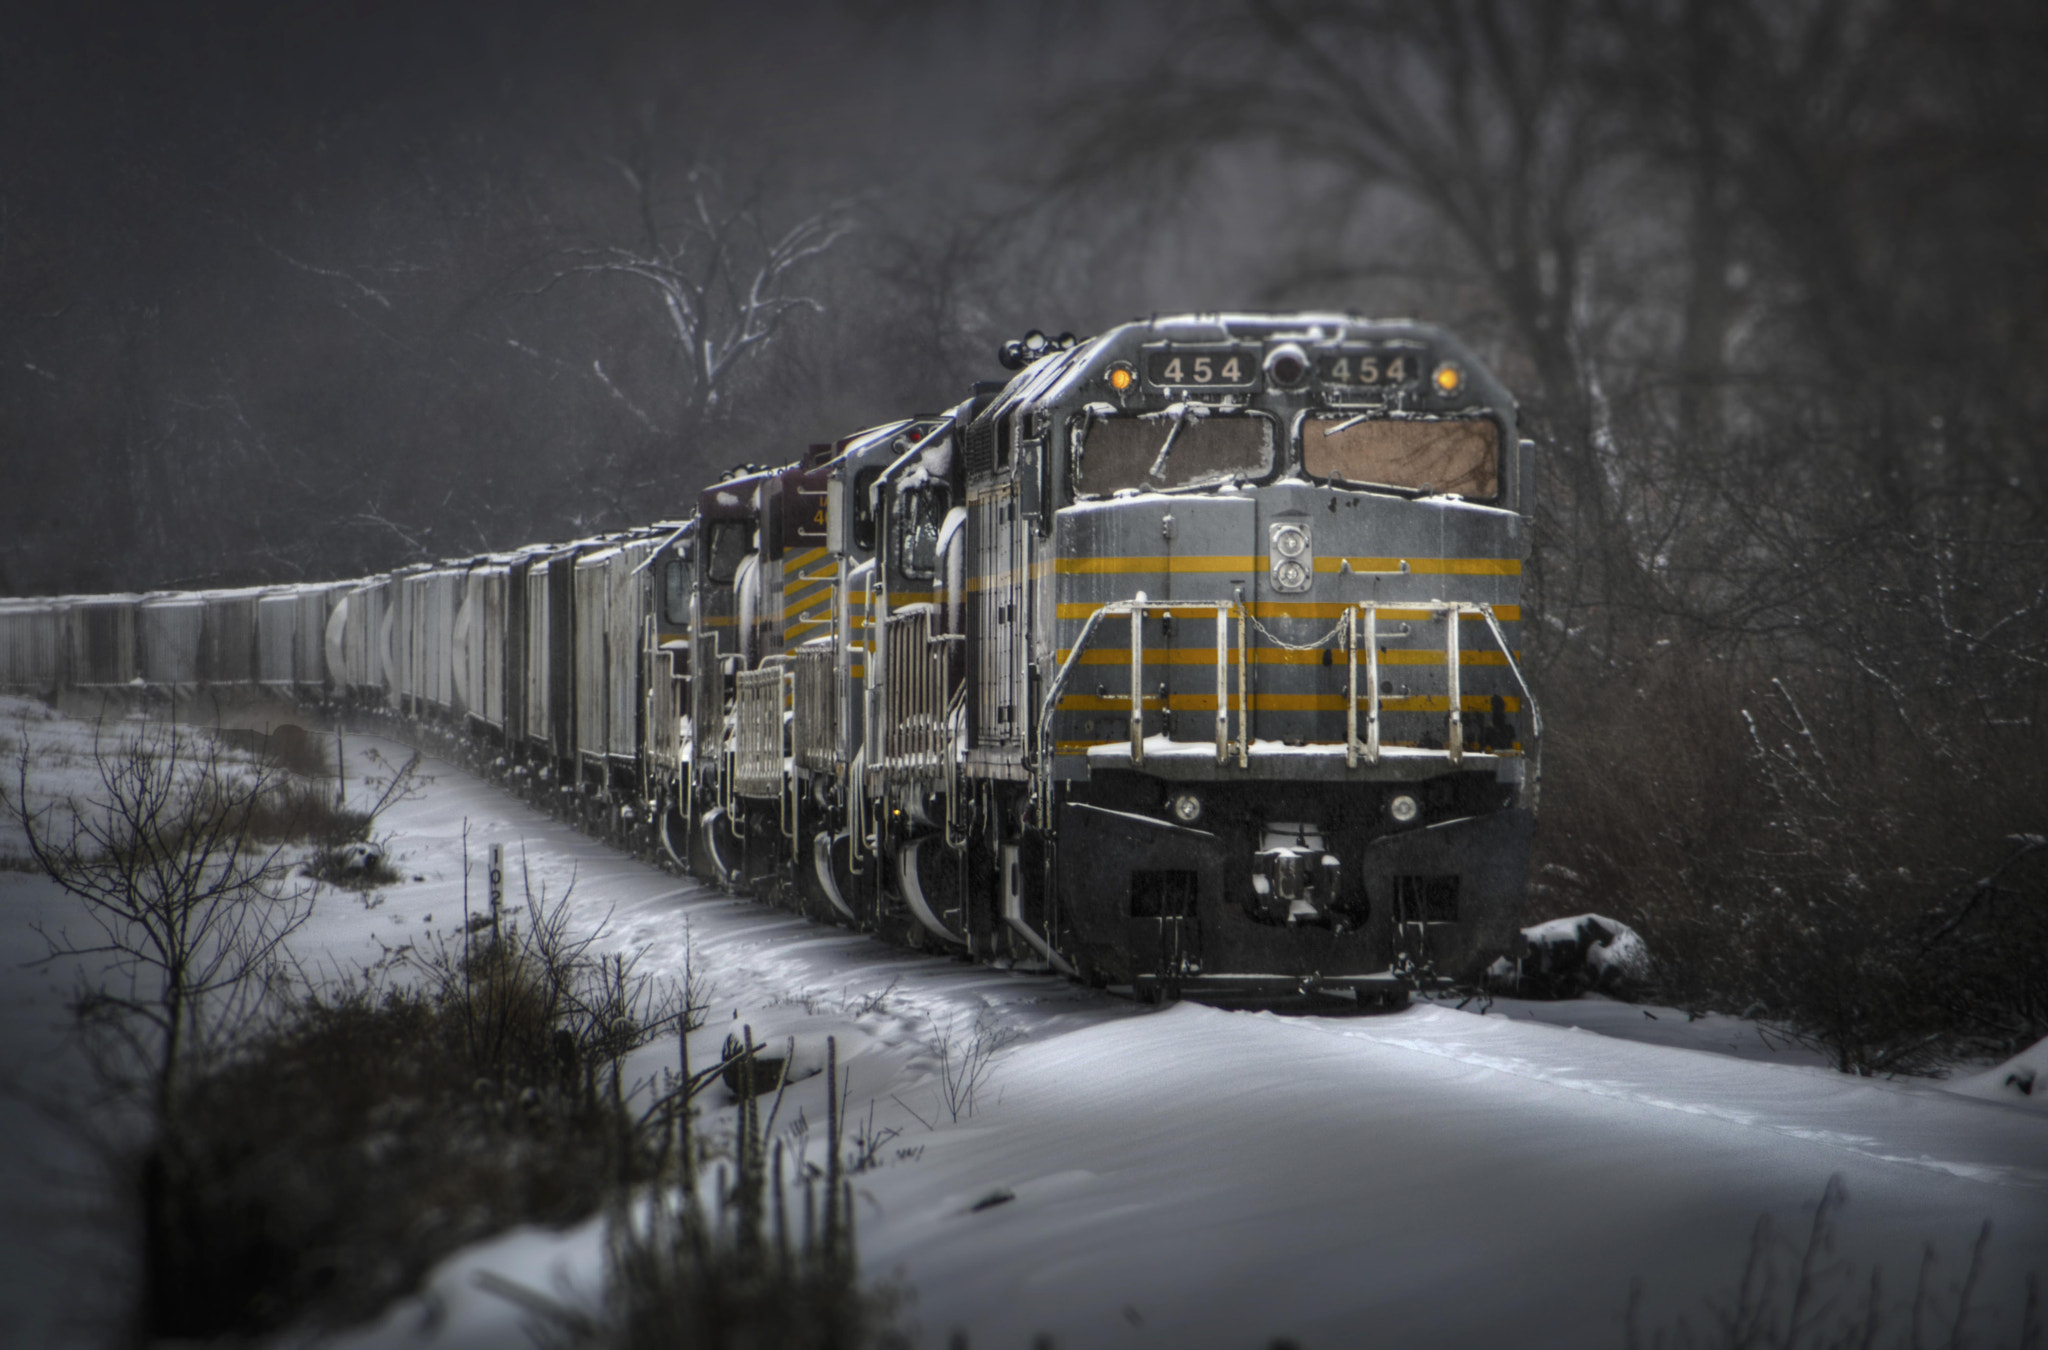 Photograph The Crandic RR by Tony Sedore on 500px